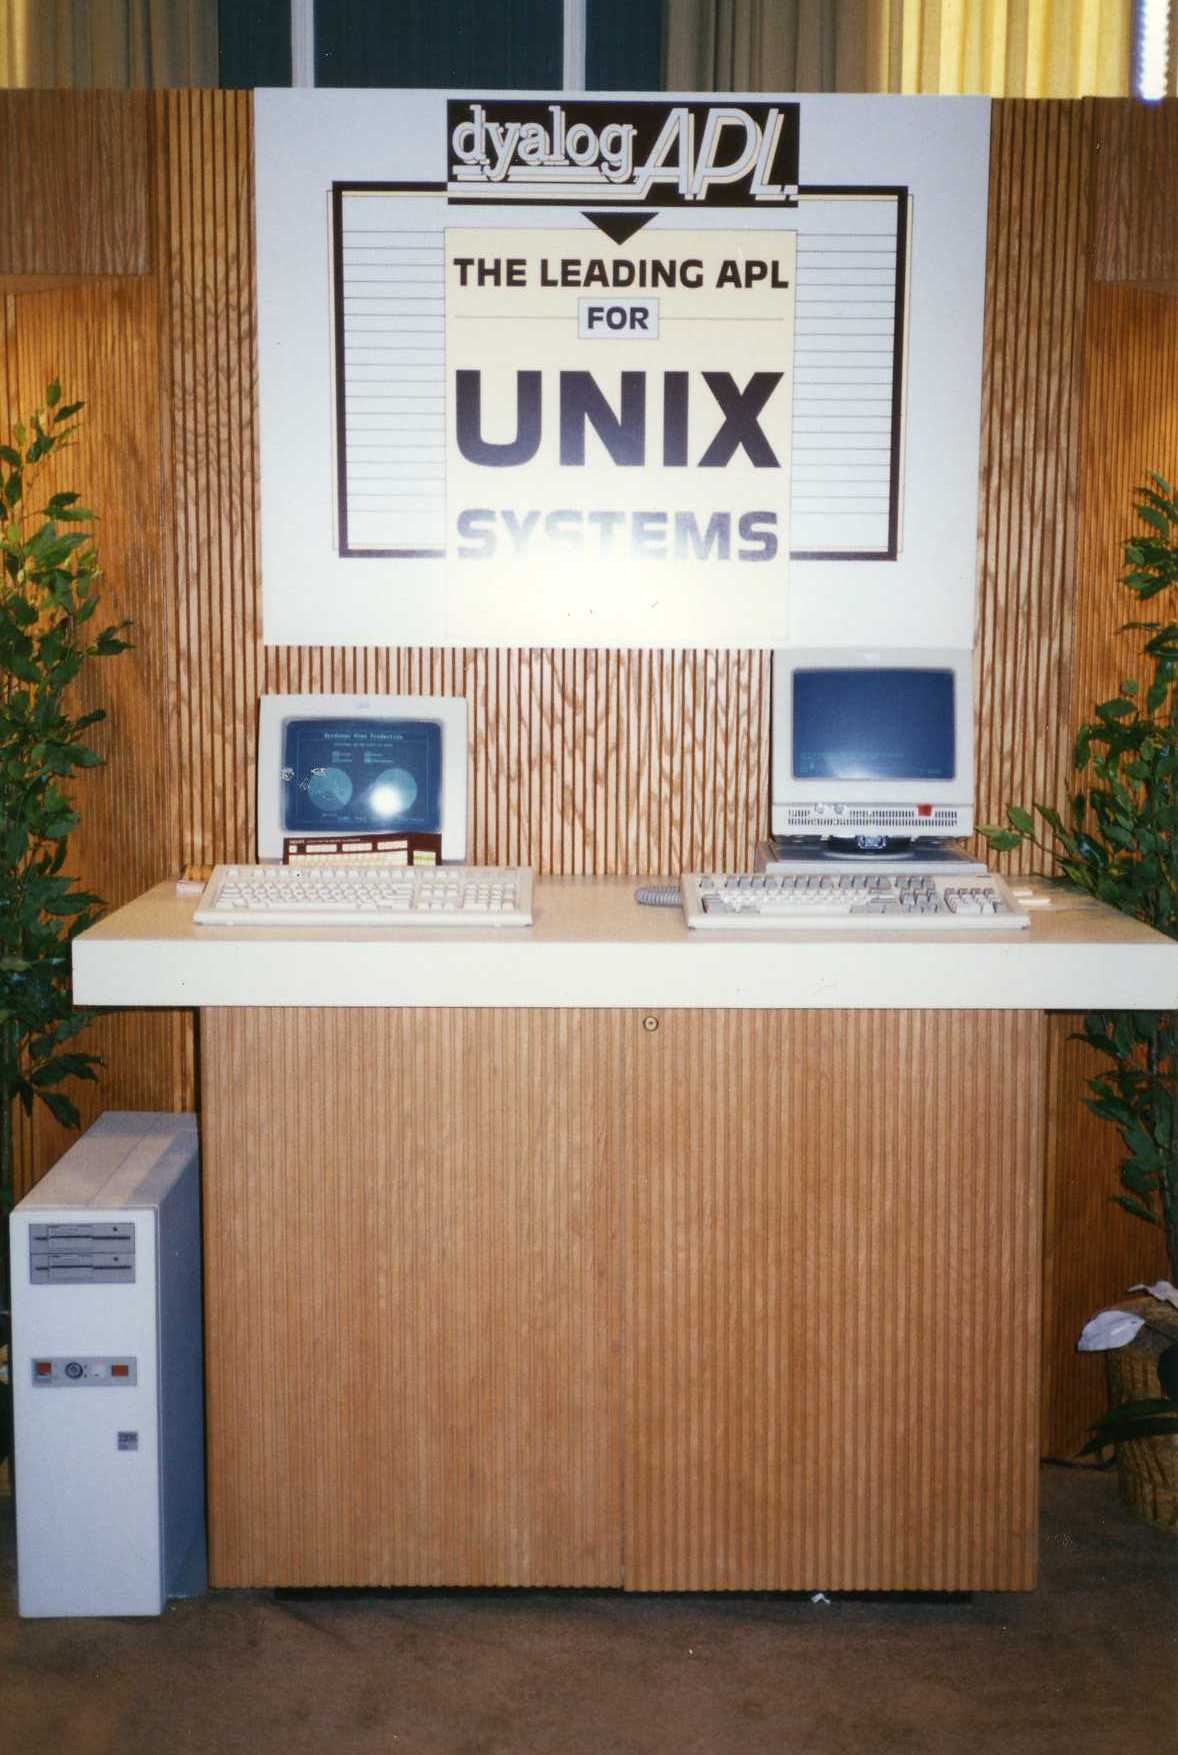 The leading APL for Unix systems